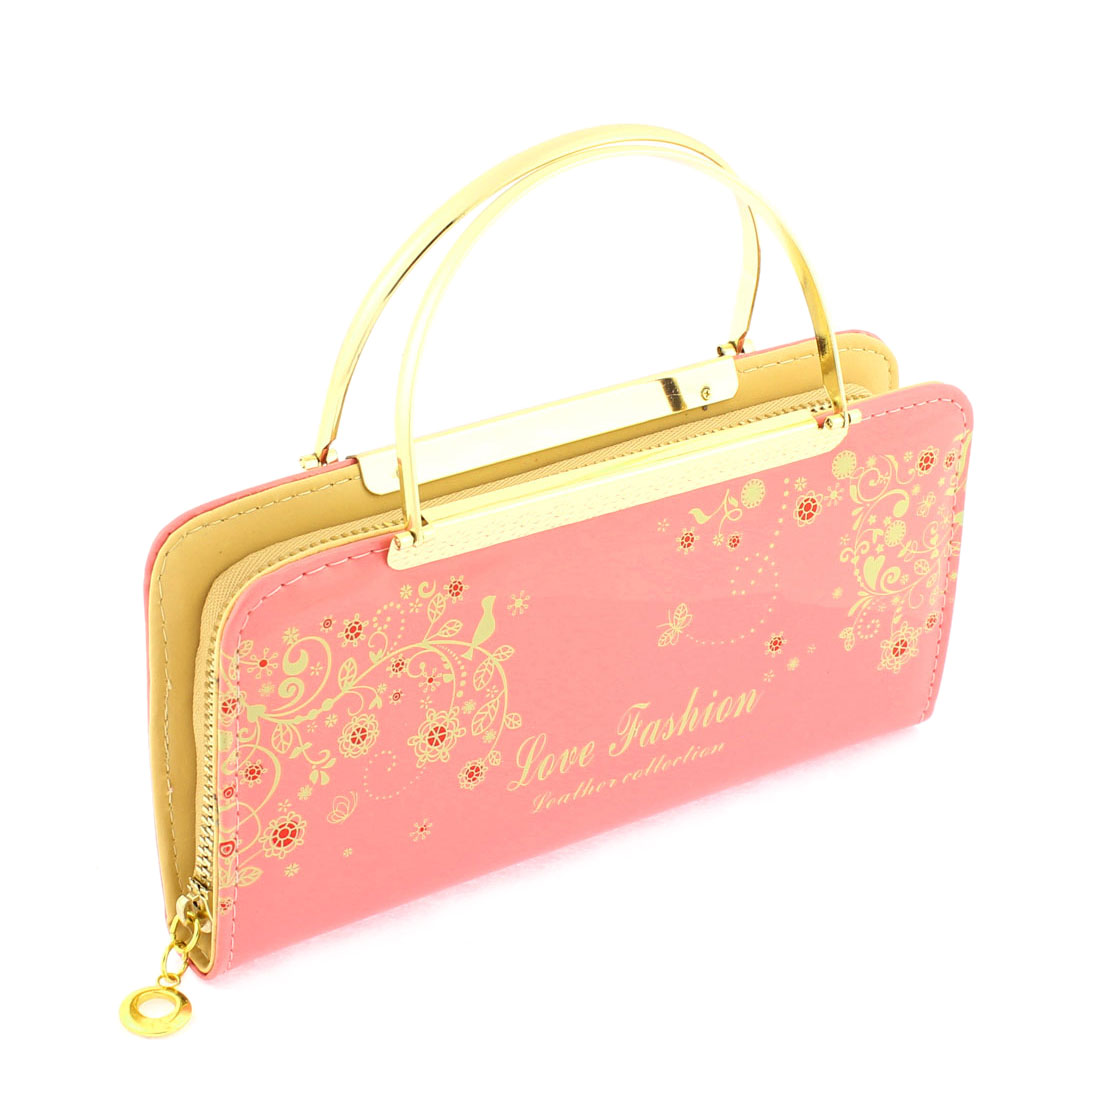 Faux Leather Zip Up Floral Letters Print Handbag Purse Evening Clutch Bag Pink